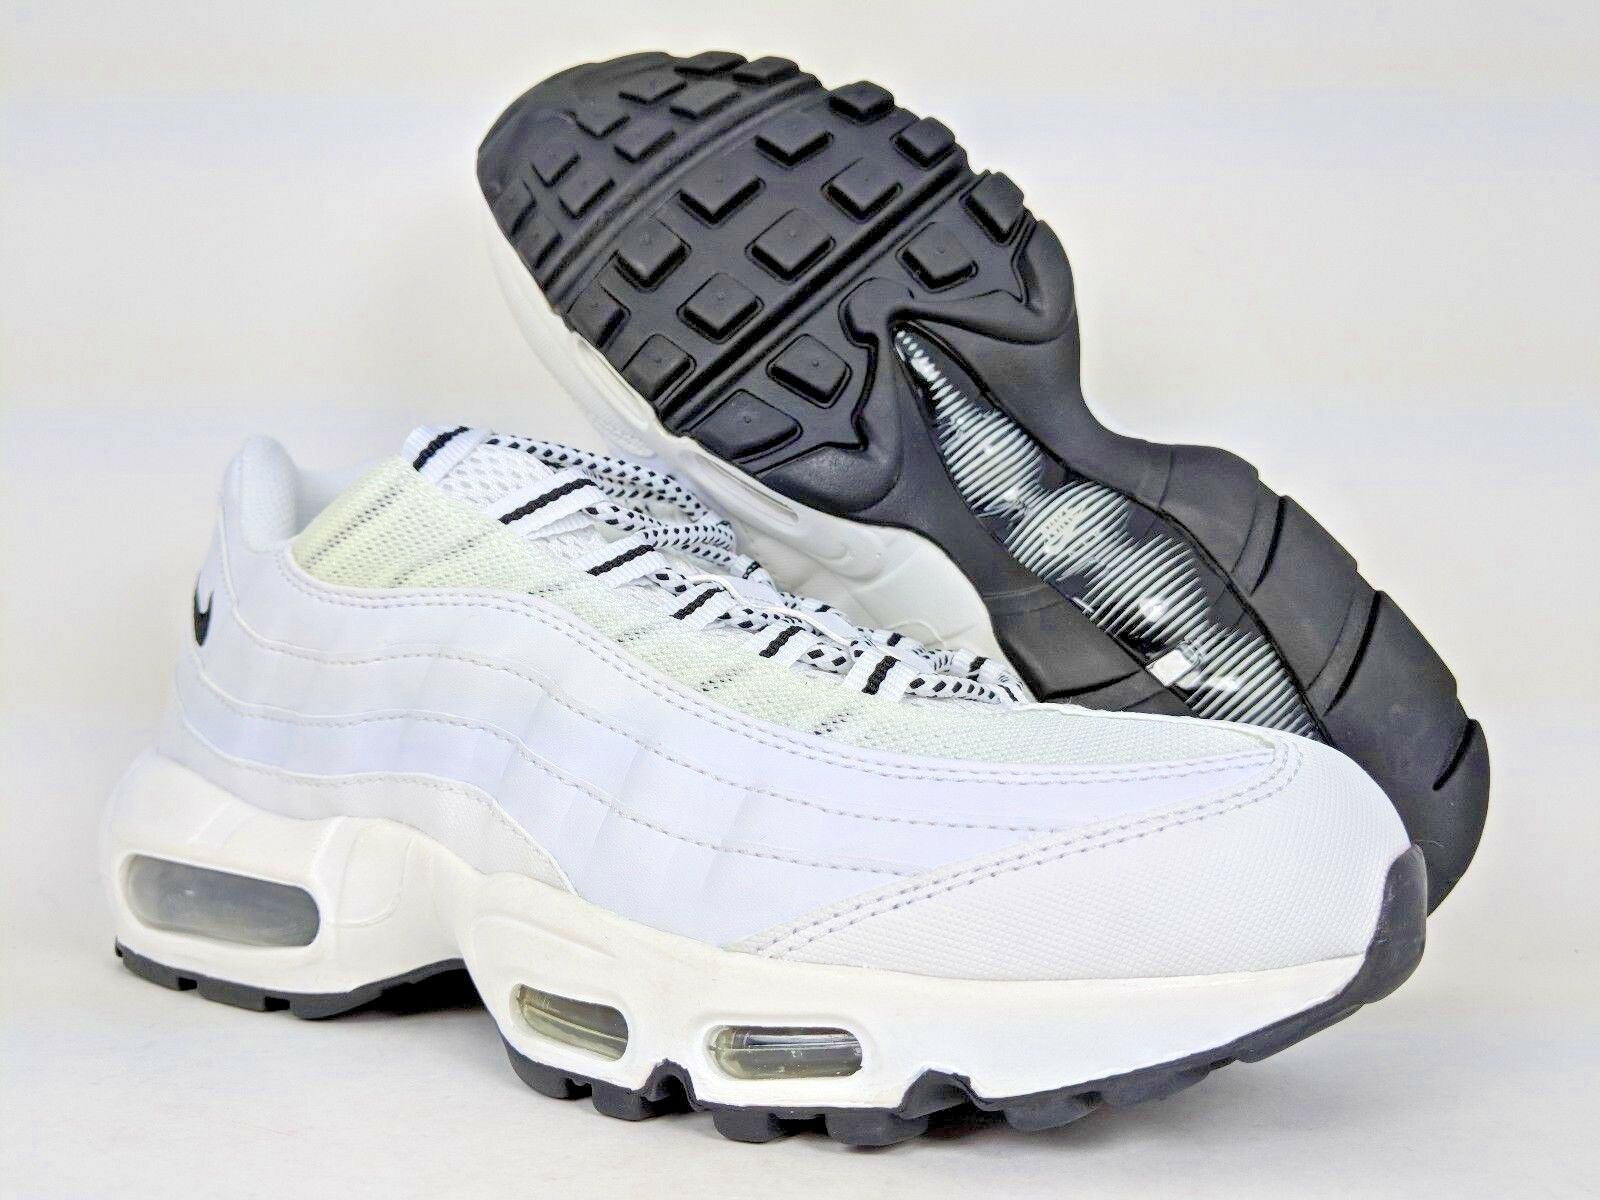 98a793609b NIKE MEN'S AIR 95 RUNNING SHOES ALL WHITE BLACK AM95 [609048-109] SZ 13 MAX  ntkfod3615-Athletic Shoes